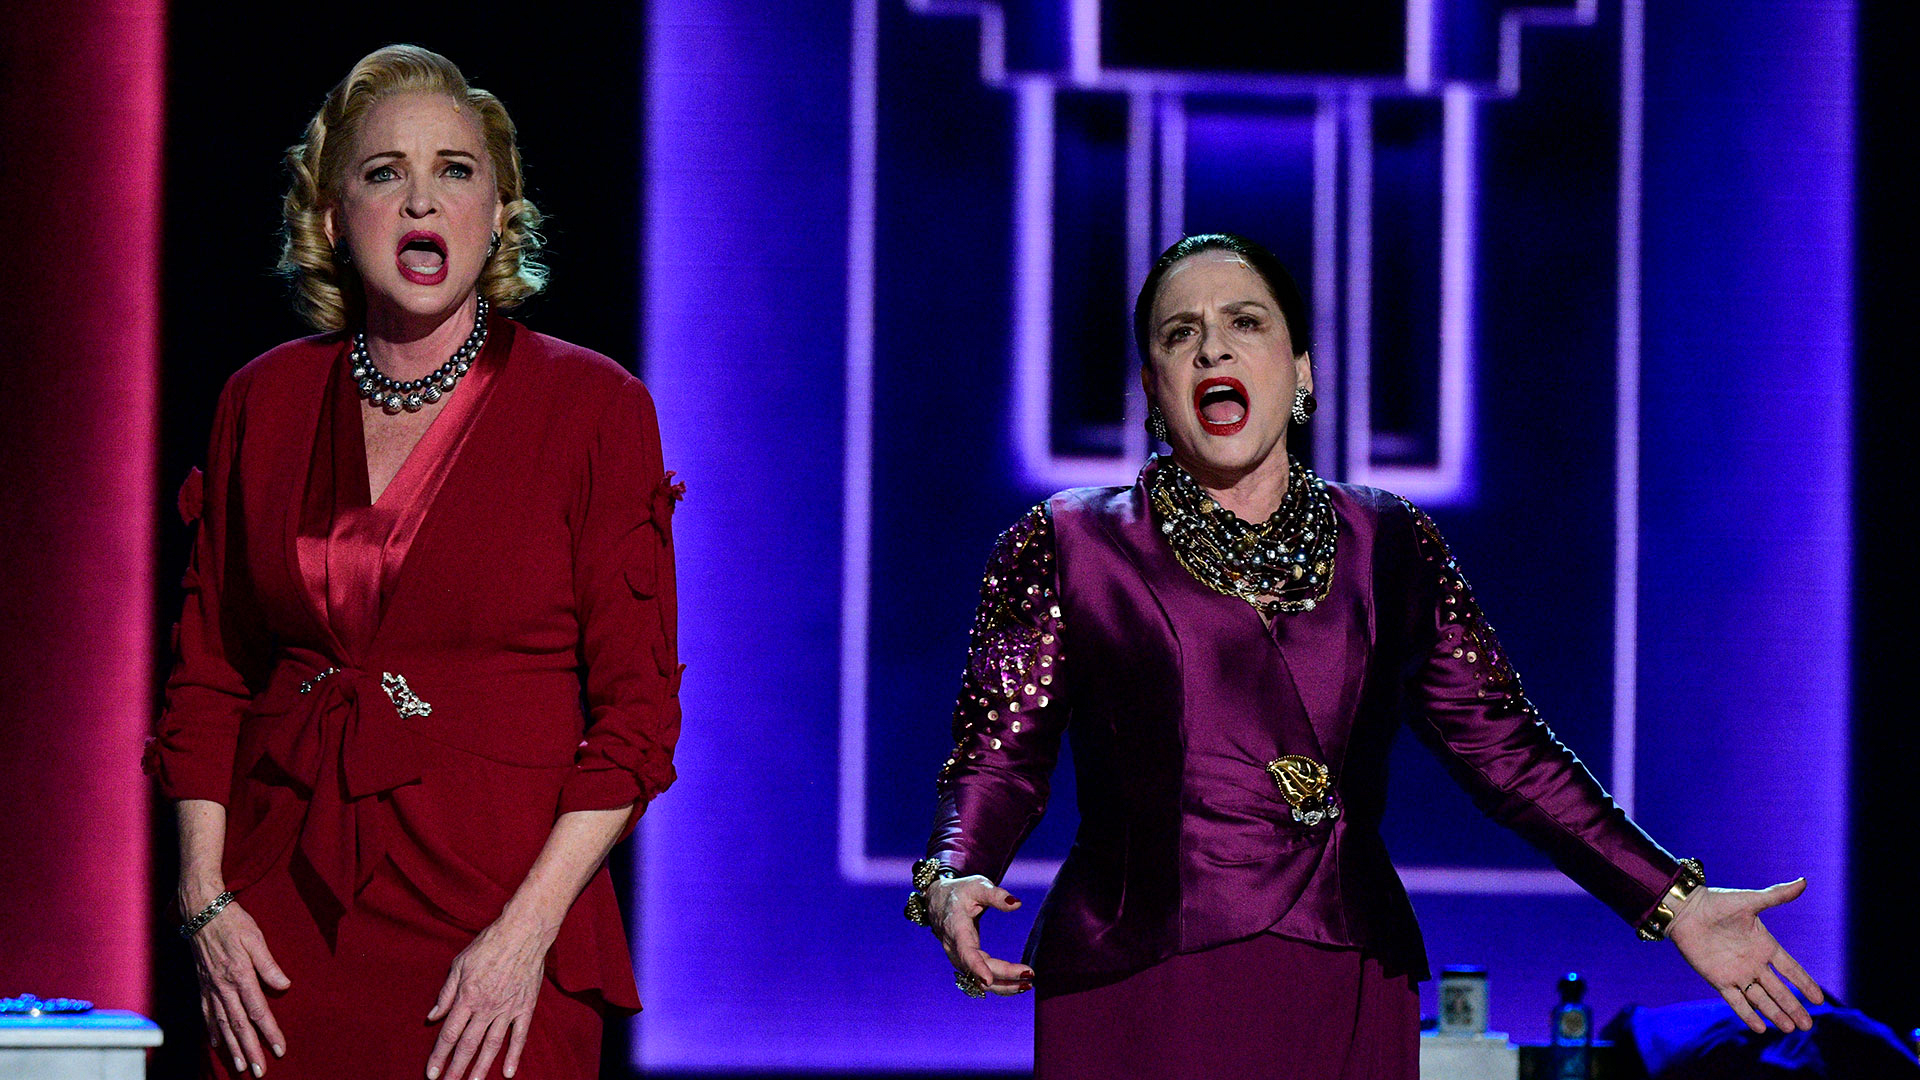 """Christine Ebersole and Patti LuPone perform """"Face to Face"""" from War Paint"""